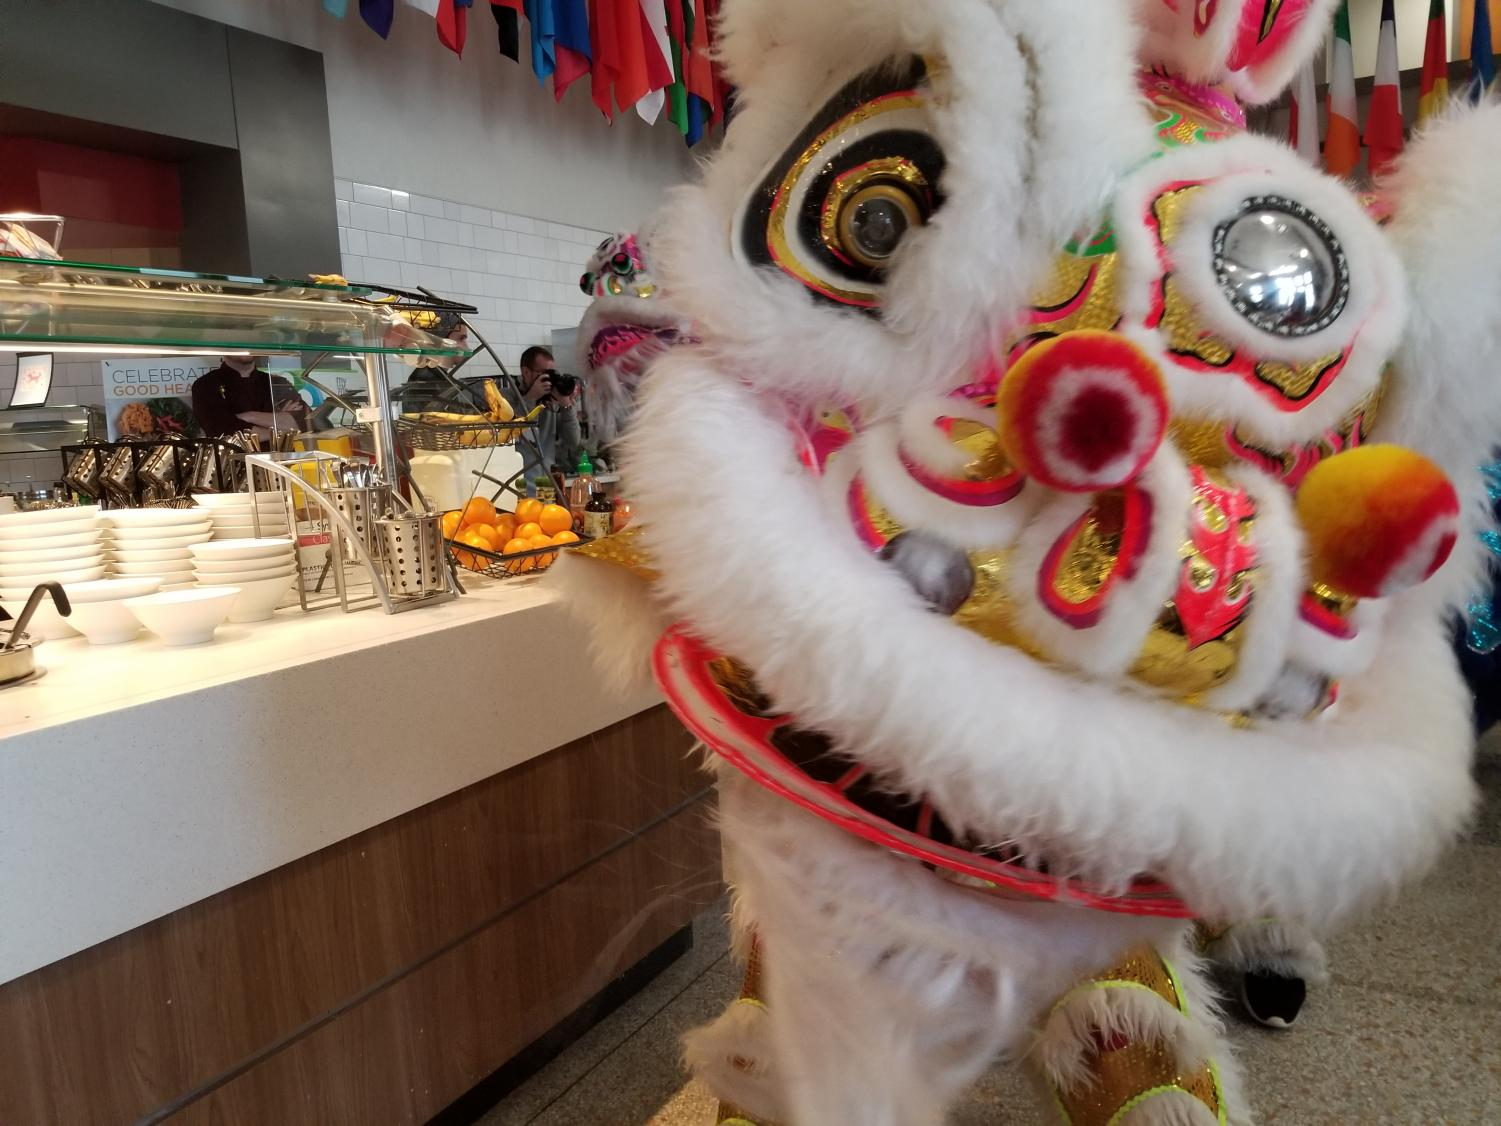 Pho Hien Troop's yellow lion dancing in the cafeteria at Park University